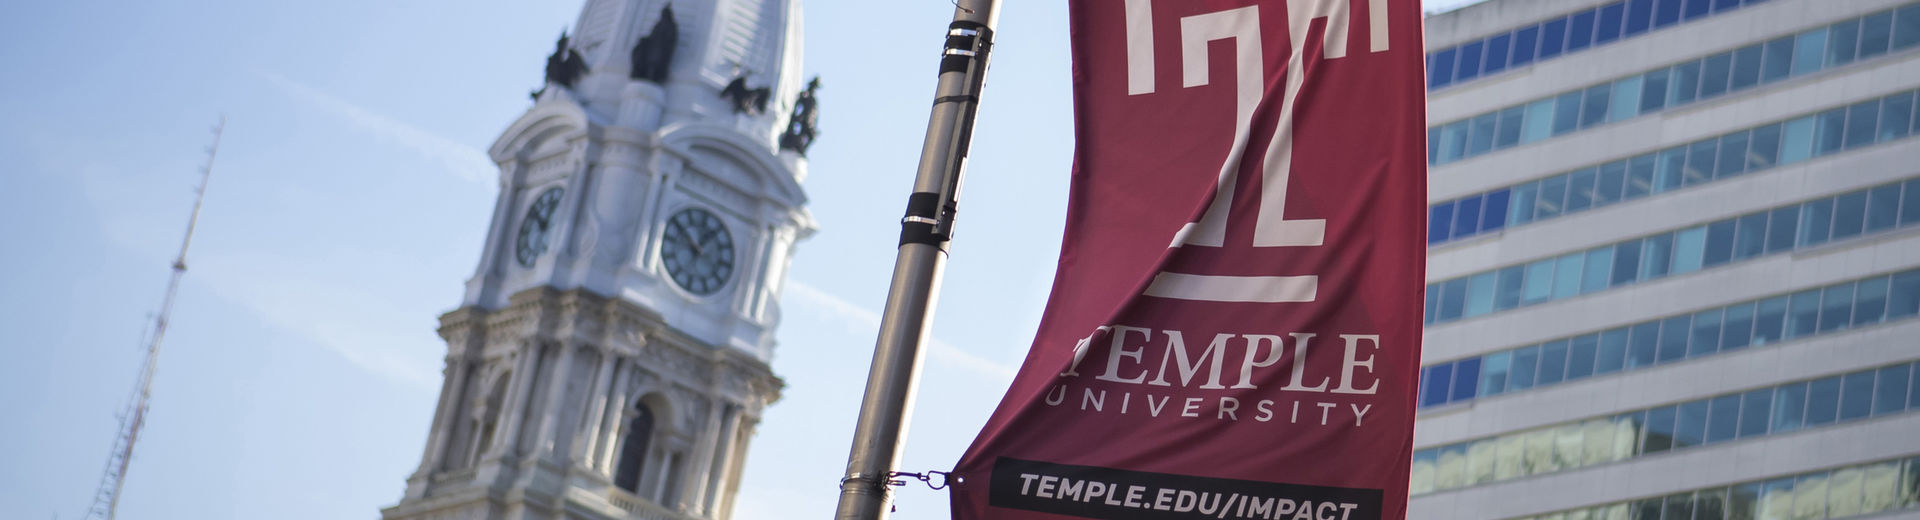 The Temple cherry T flag waves in front of the Philadelphia City Hall building